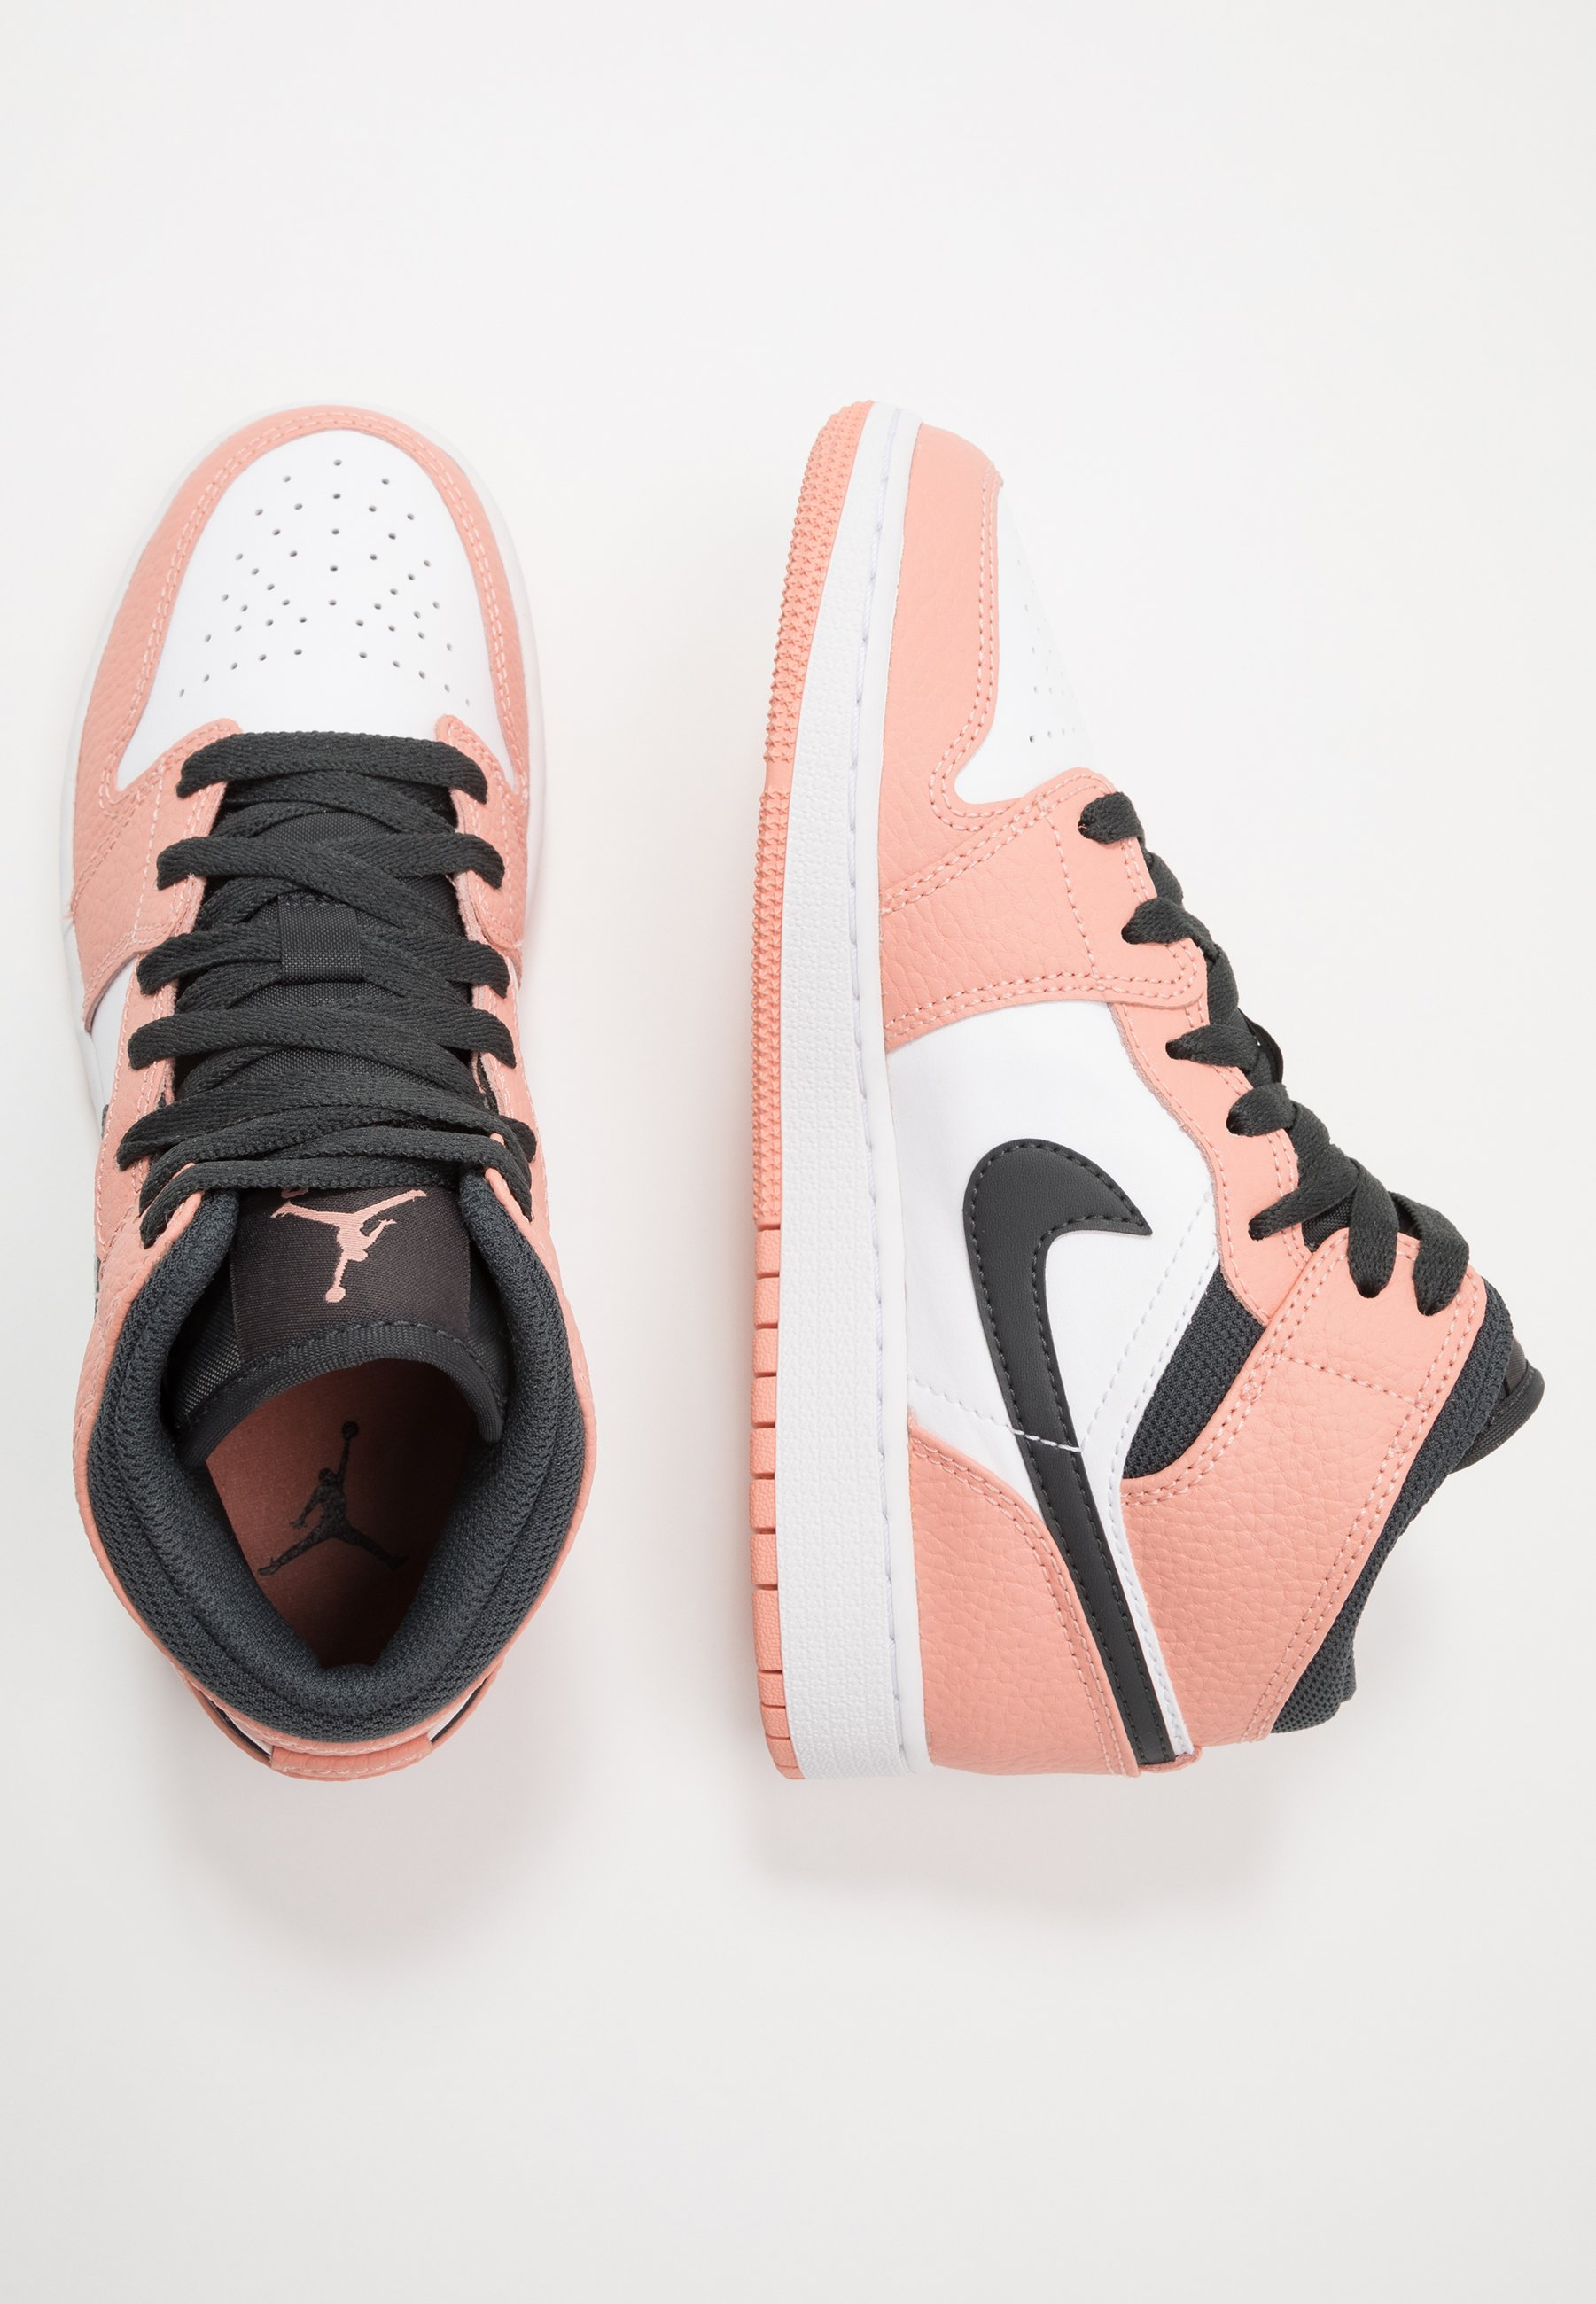 AIR 1 MID UNISEX - Scarpe da basket - pink quartz/dark smoke grey/white